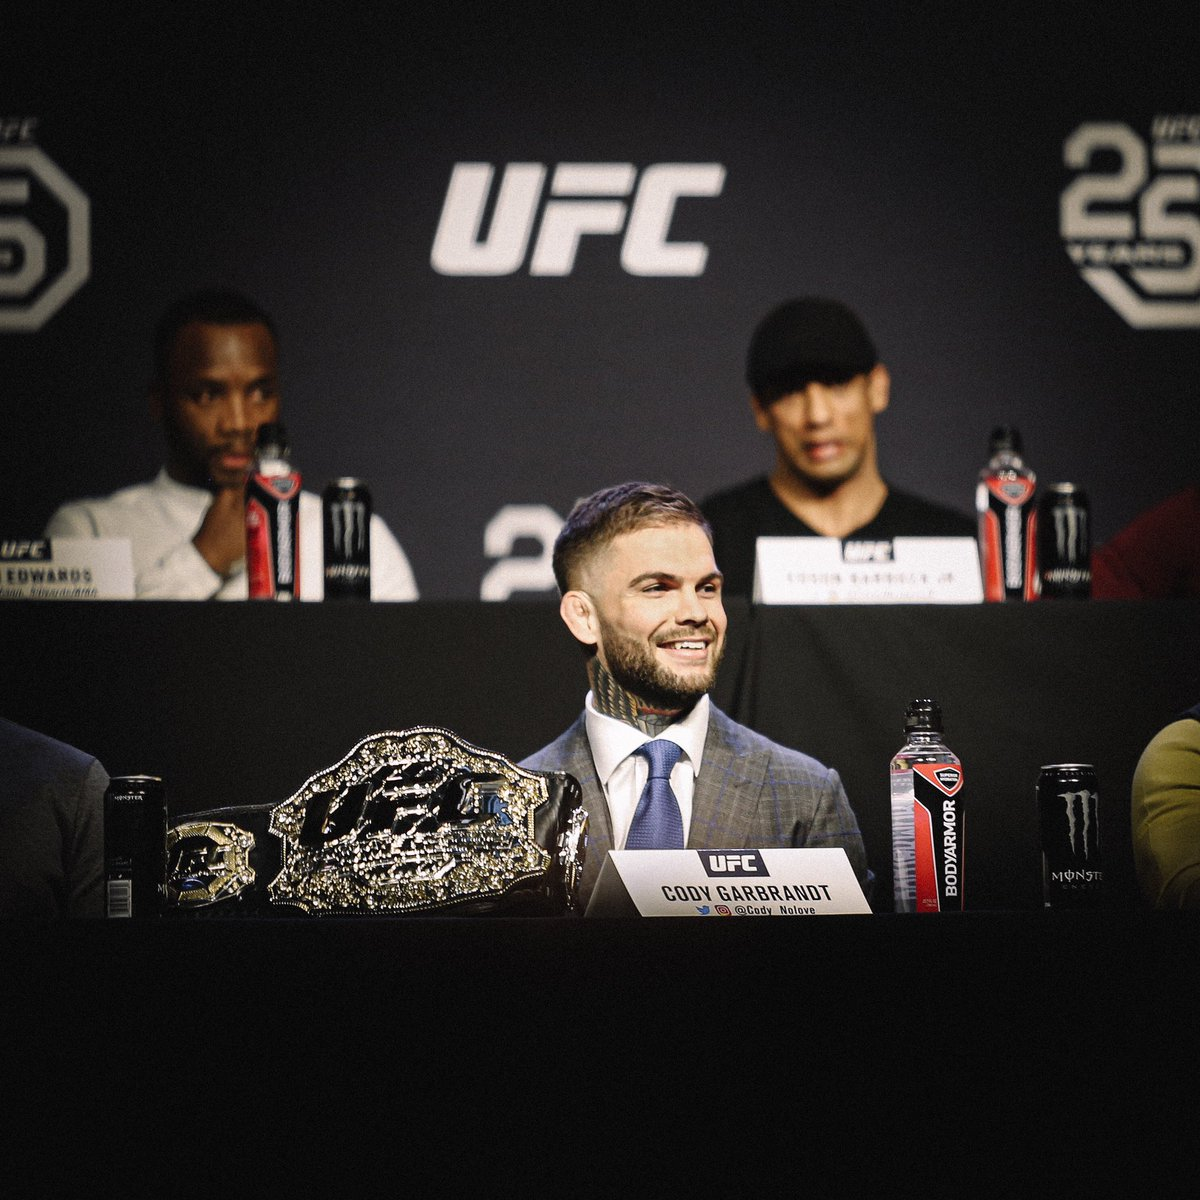 3 years ago @Cody_Nolove In Brooklyn, New York smiles all round in a @DavidAugustInc suit! #damnthatbeltlooksgood https://t.co/Y7H65VfucV